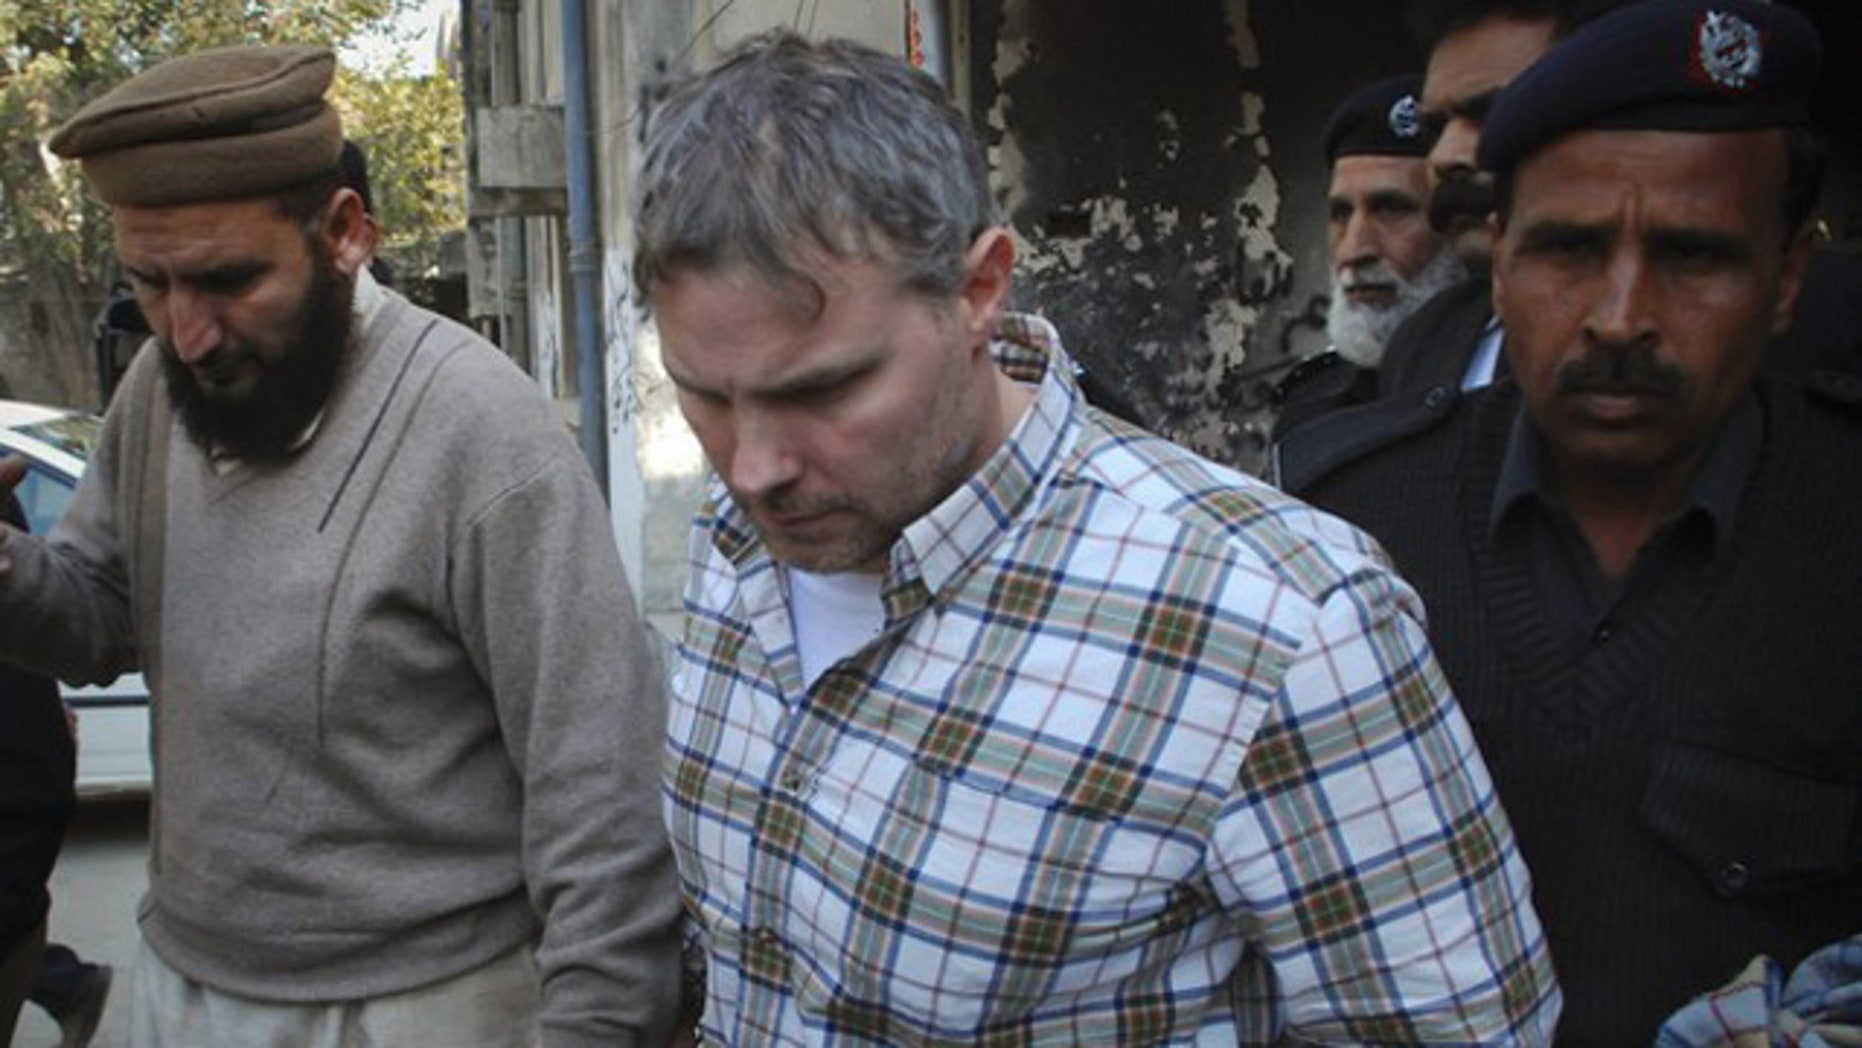 Jan. 28: A U.S. consulate employee is escorted by police and officials out of court after facing a judge in Lahore.